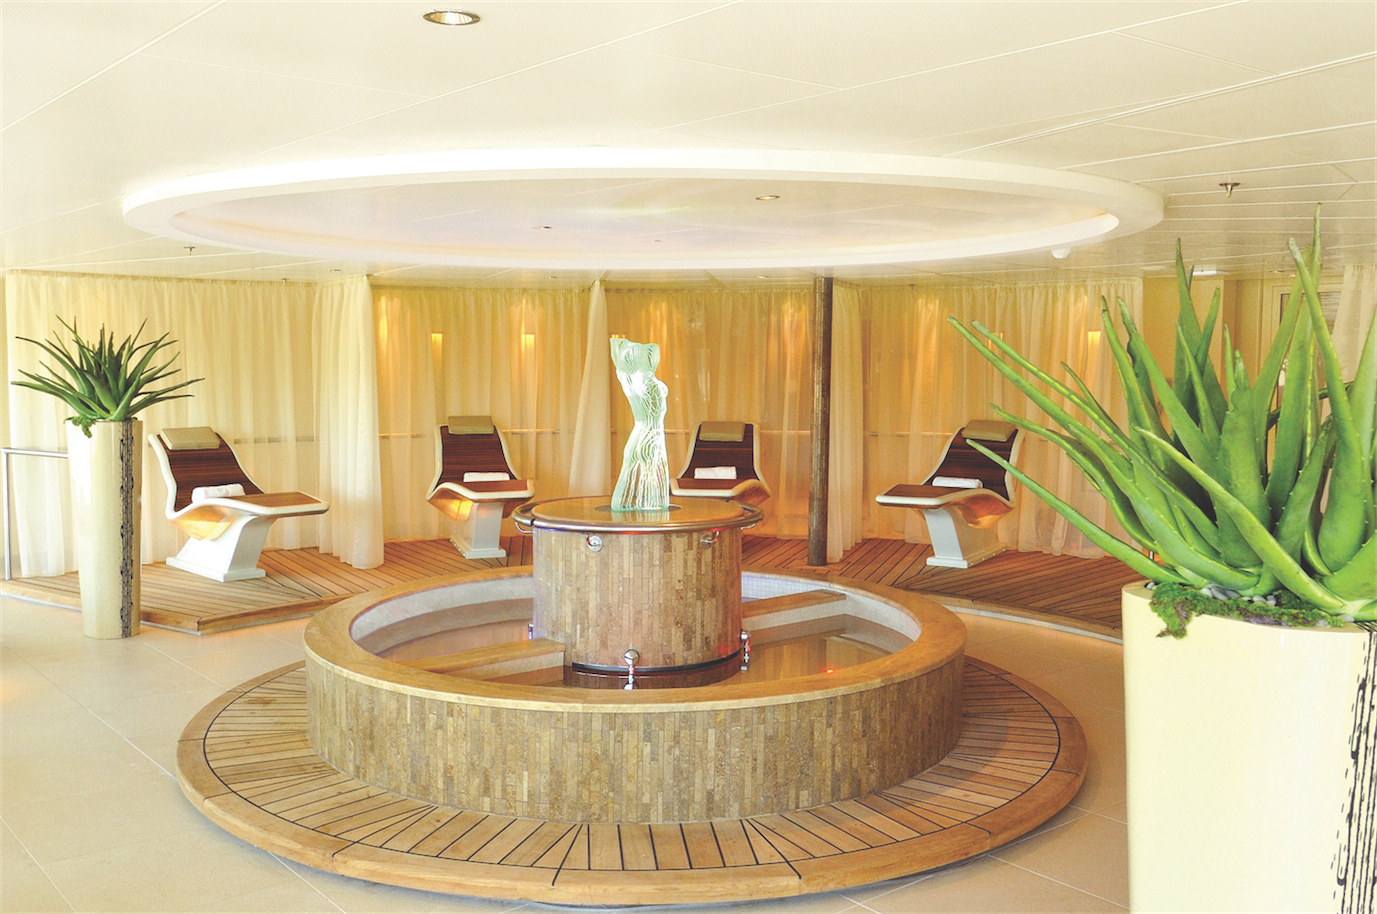 Seabourn Odyssey Interior The Spa at Seabourn Kniepp Walk.jpg